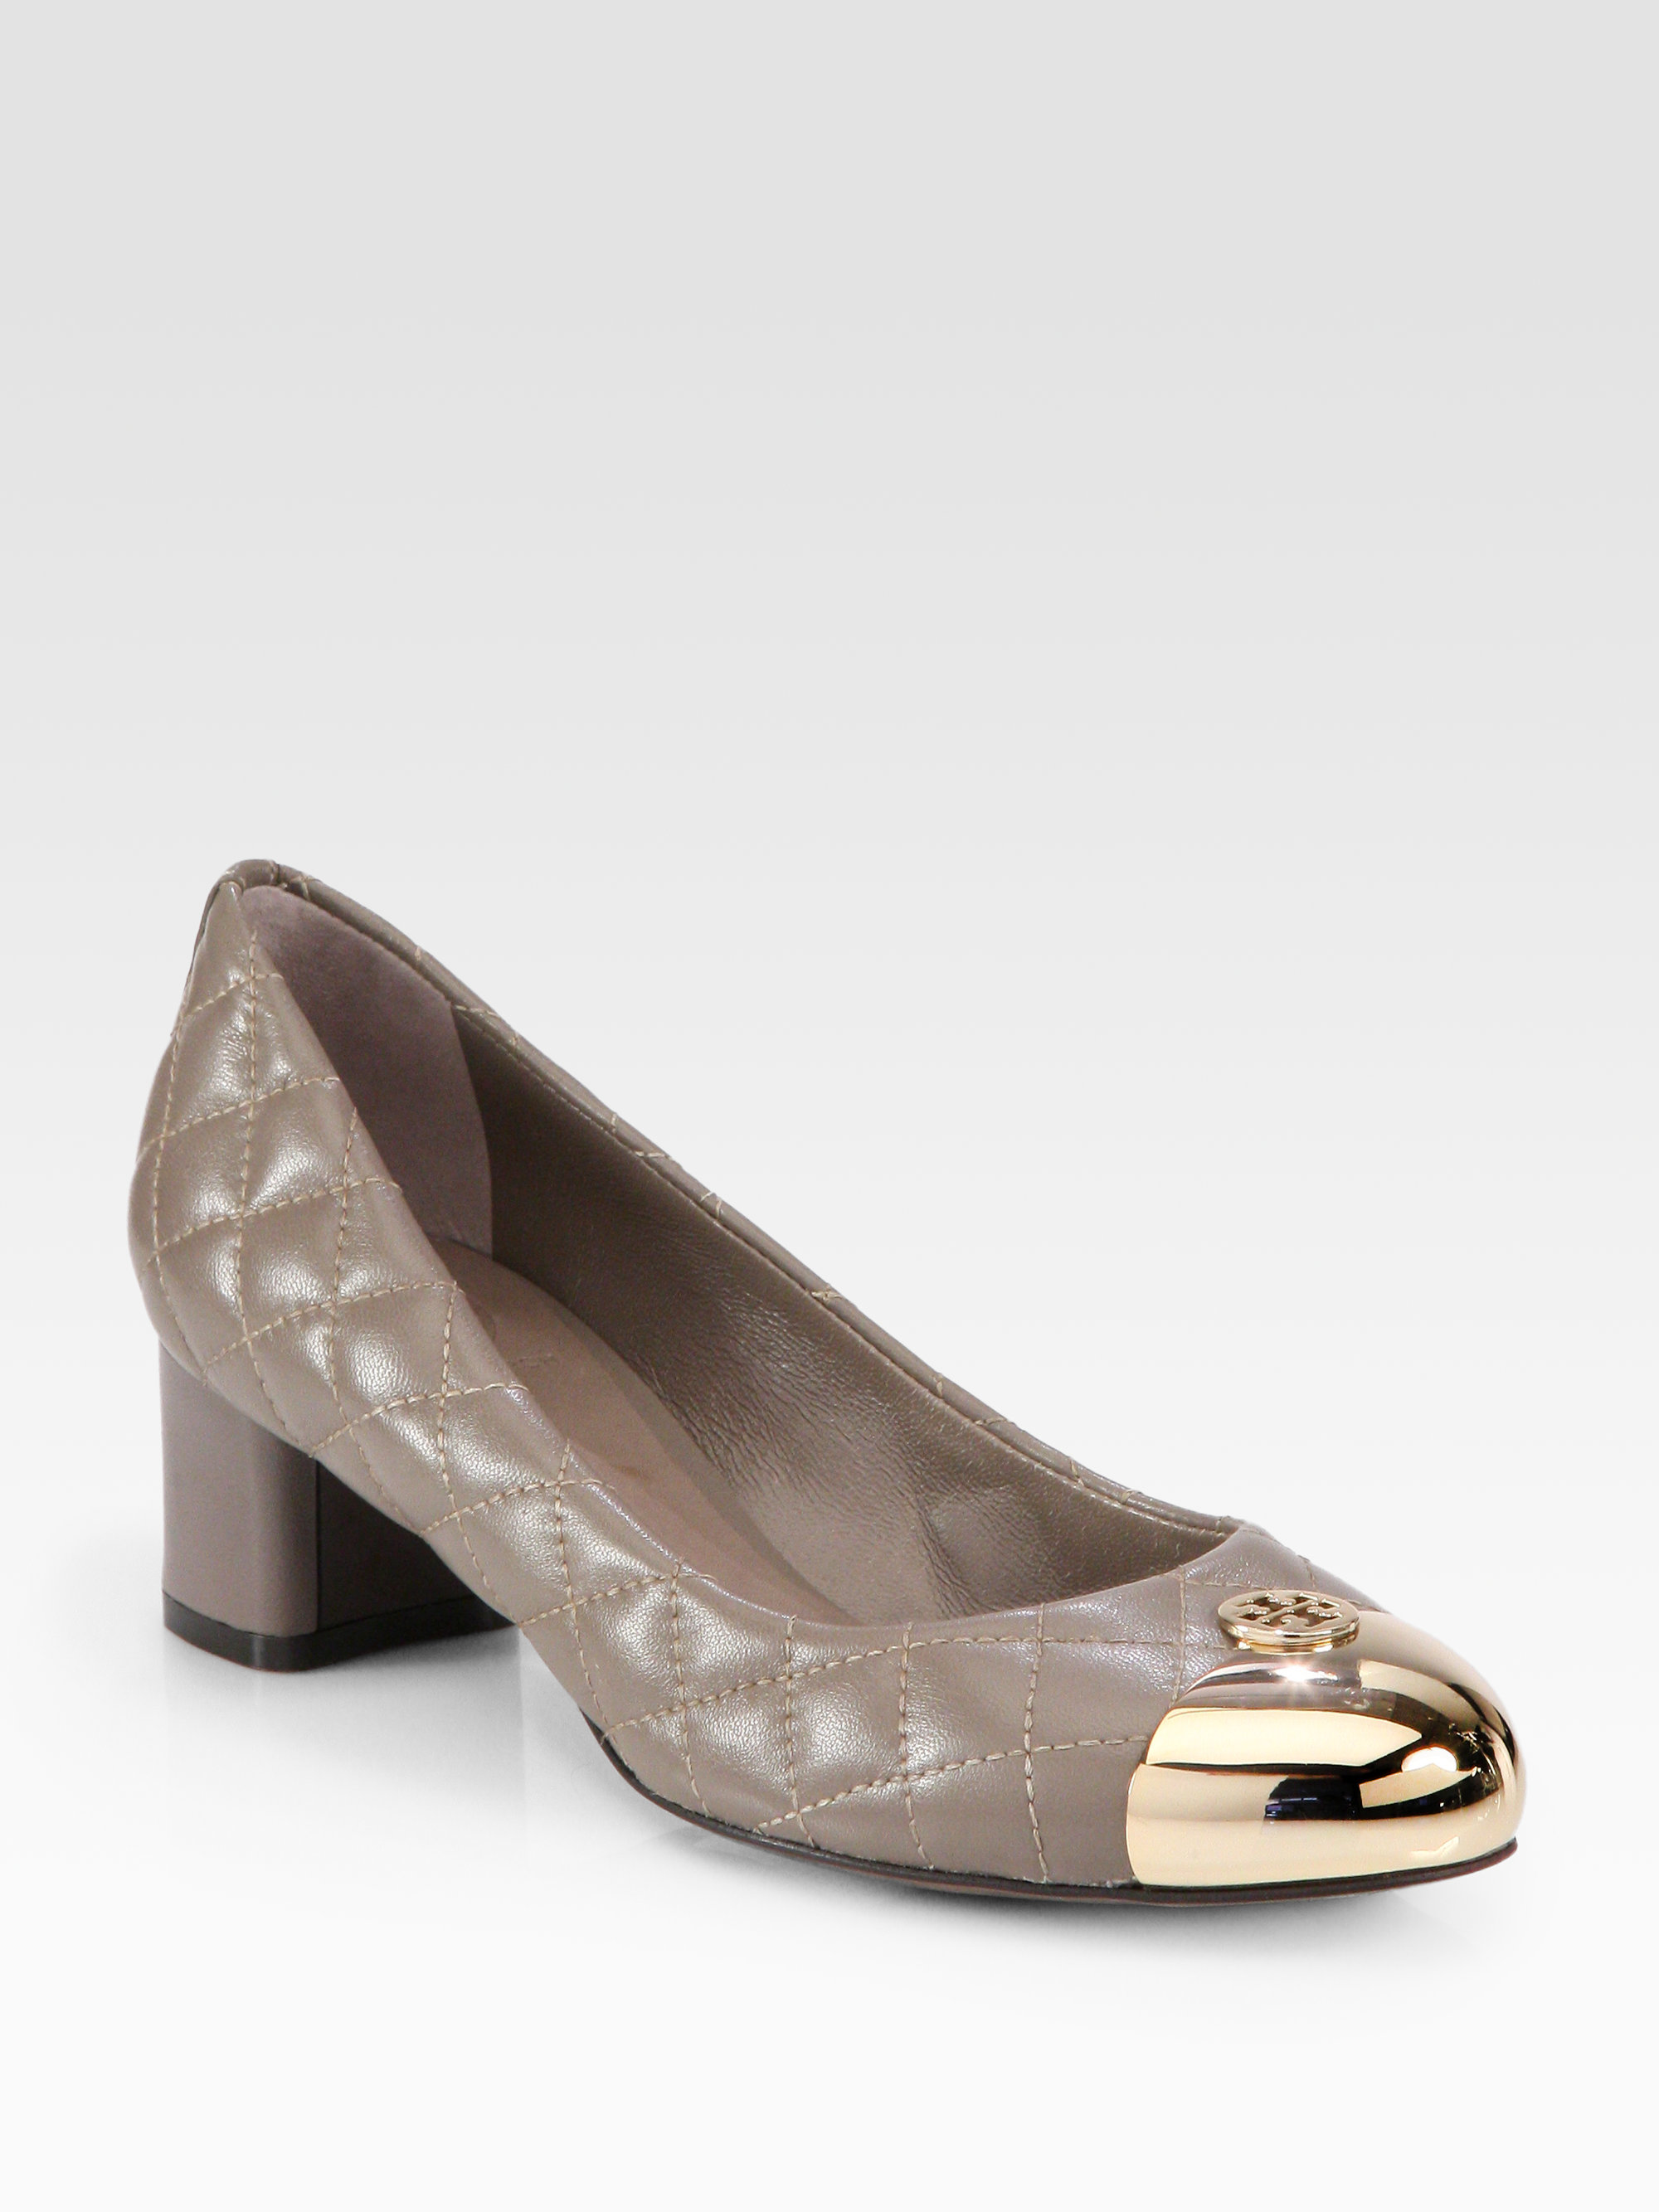 15874ebe553f Lyst - Tory Burch Kaitlin Quilted Leather Pumps in Brown